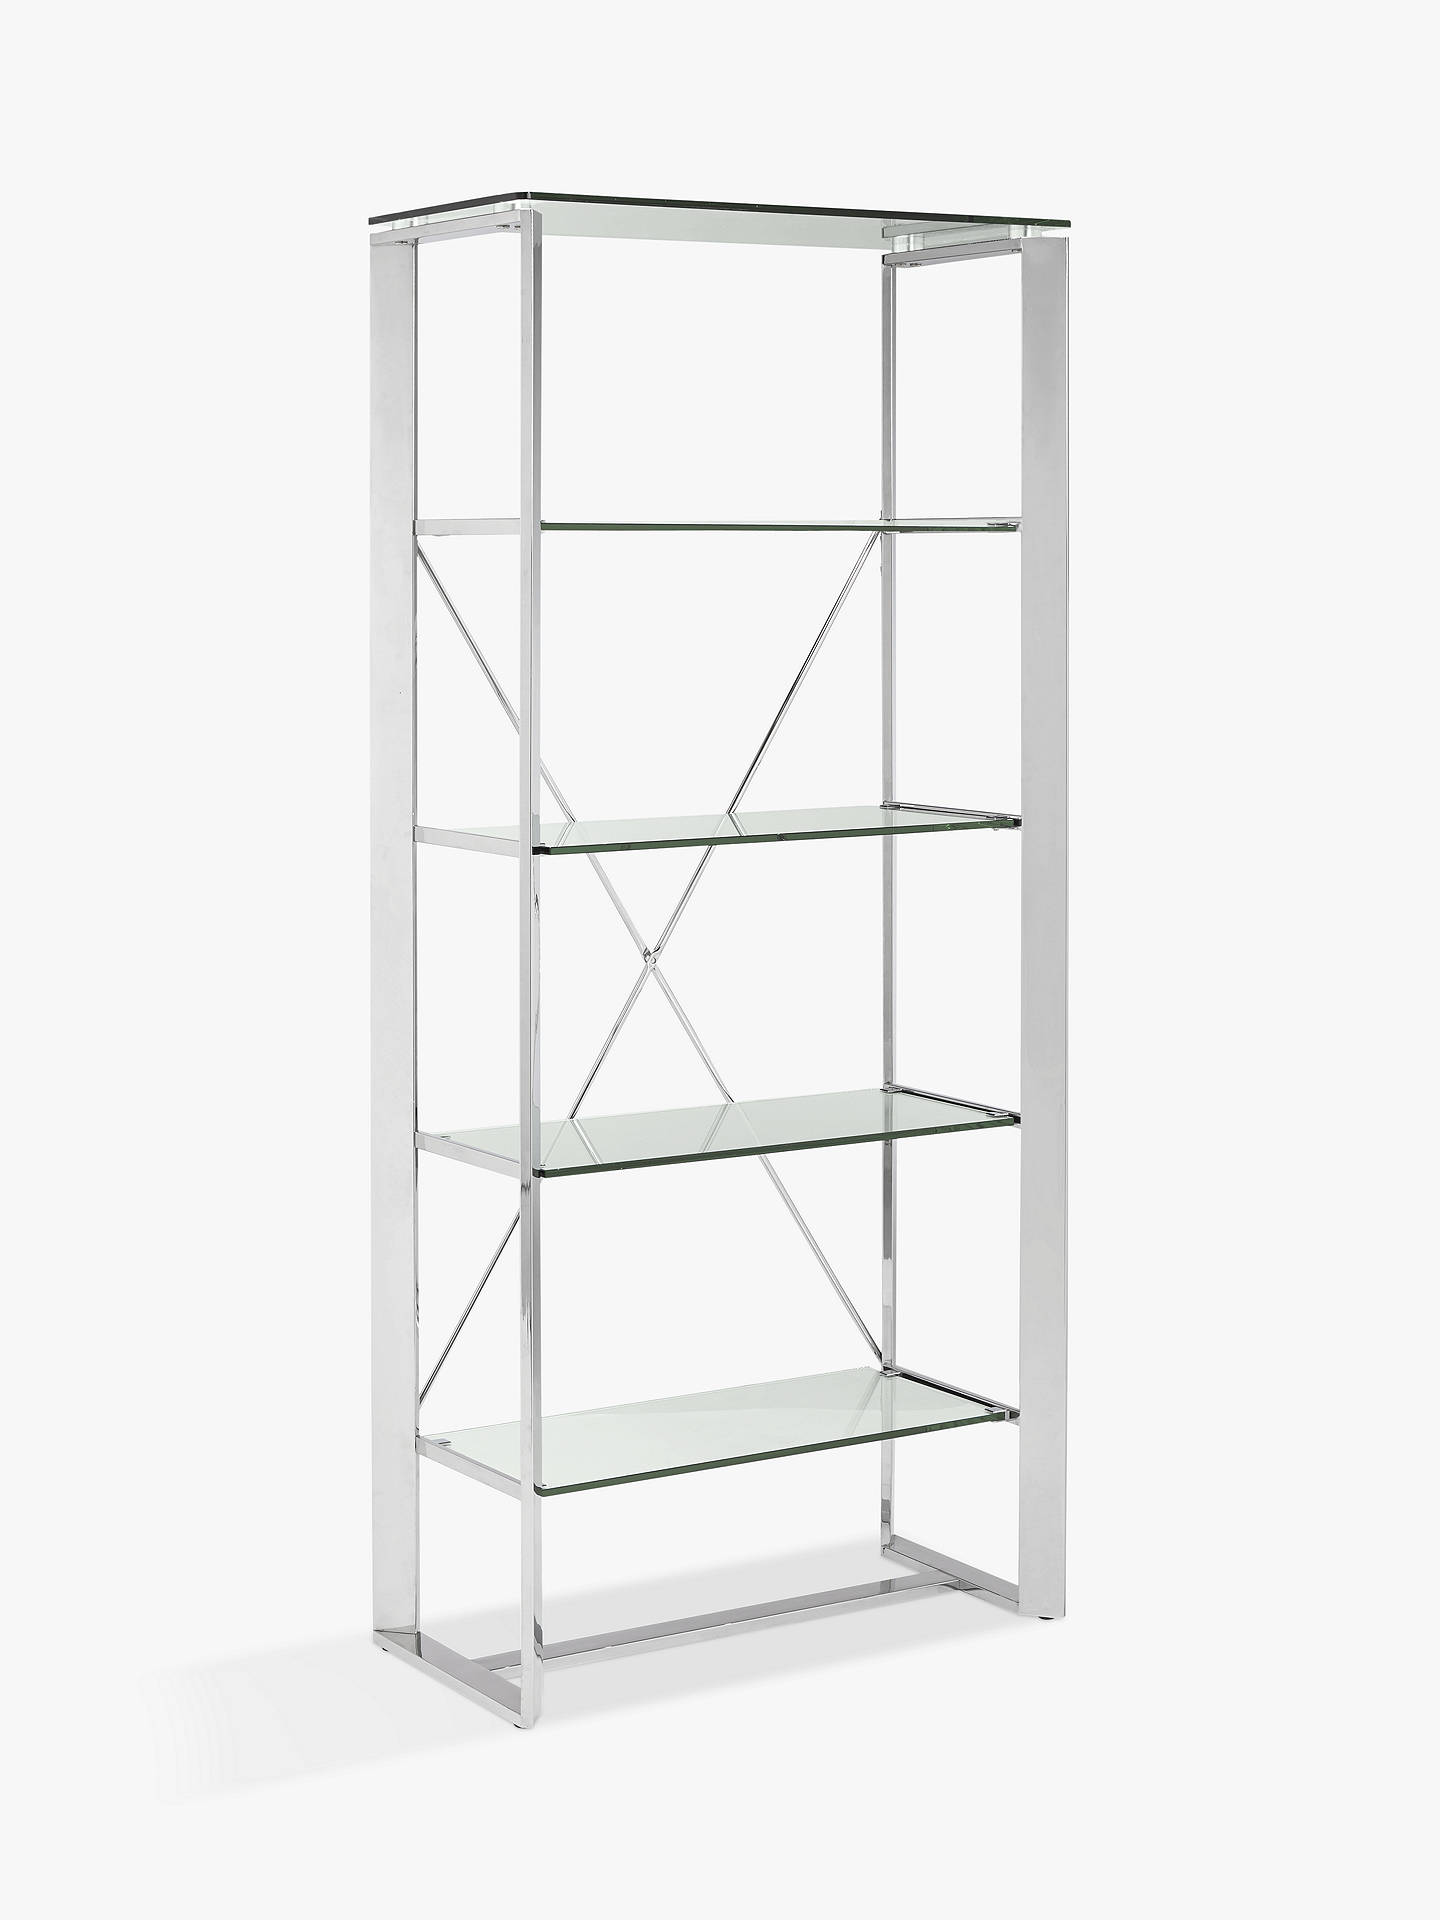 42c46ddca3c2 Buy John Lewis & Partners Tropez Rectangular Shelving Unit Online at  johnlewis. ...